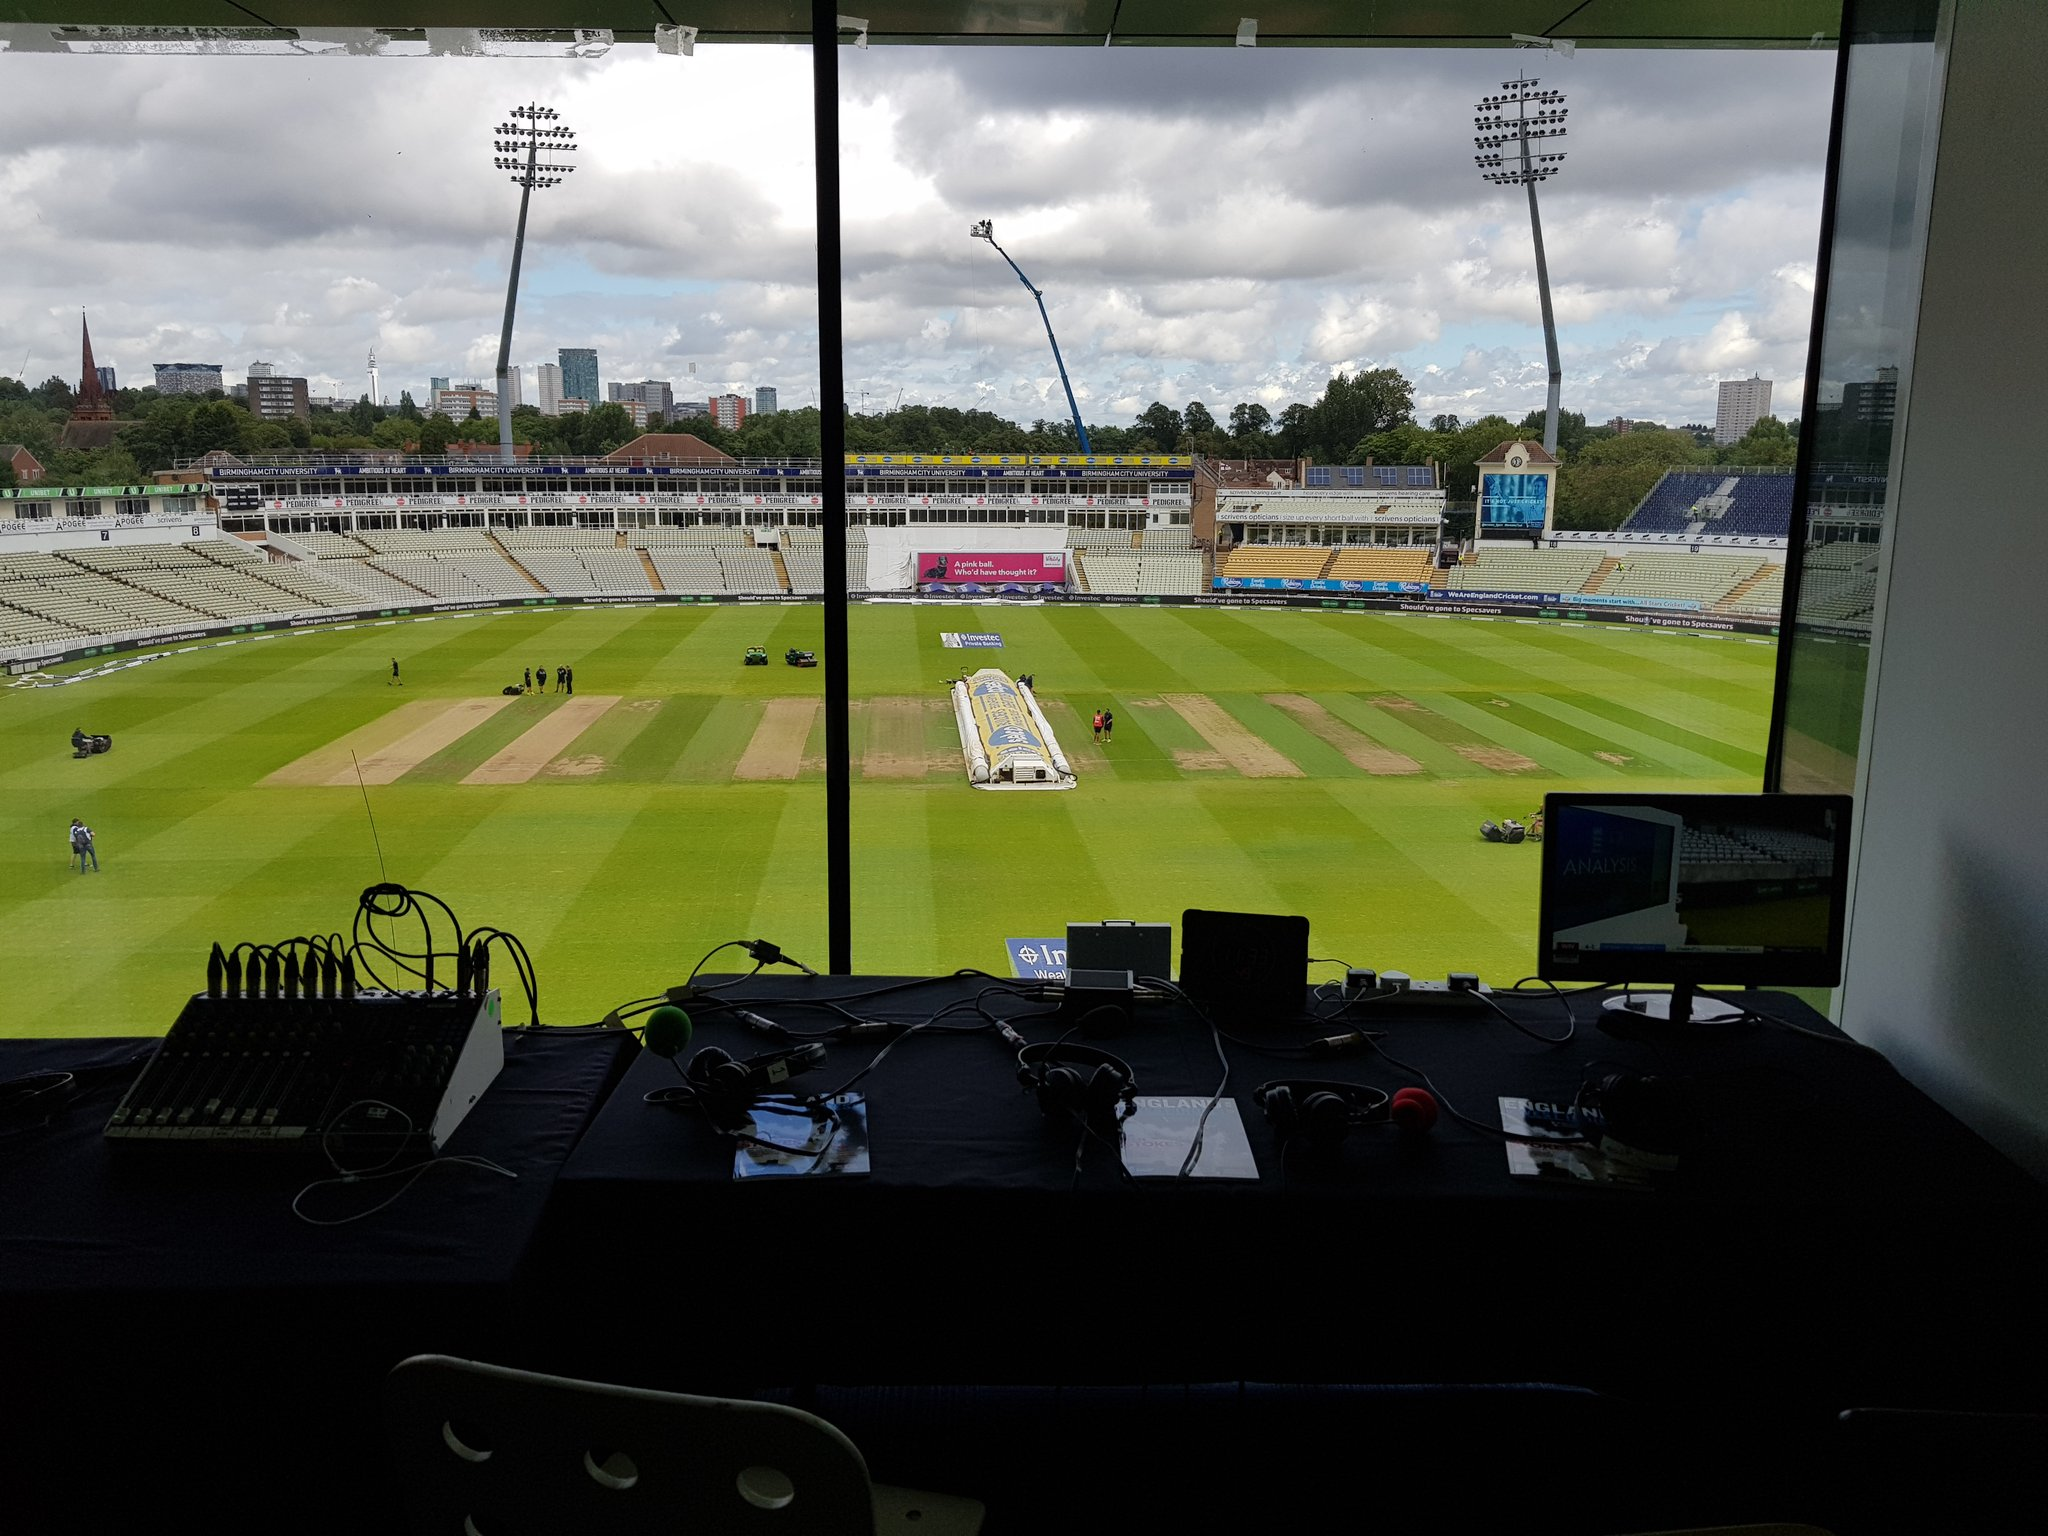 Arrived at @WarwickshireCCC #Edgbaston for @bbc5live Here's the view! https://t.co/i60fqa0d18